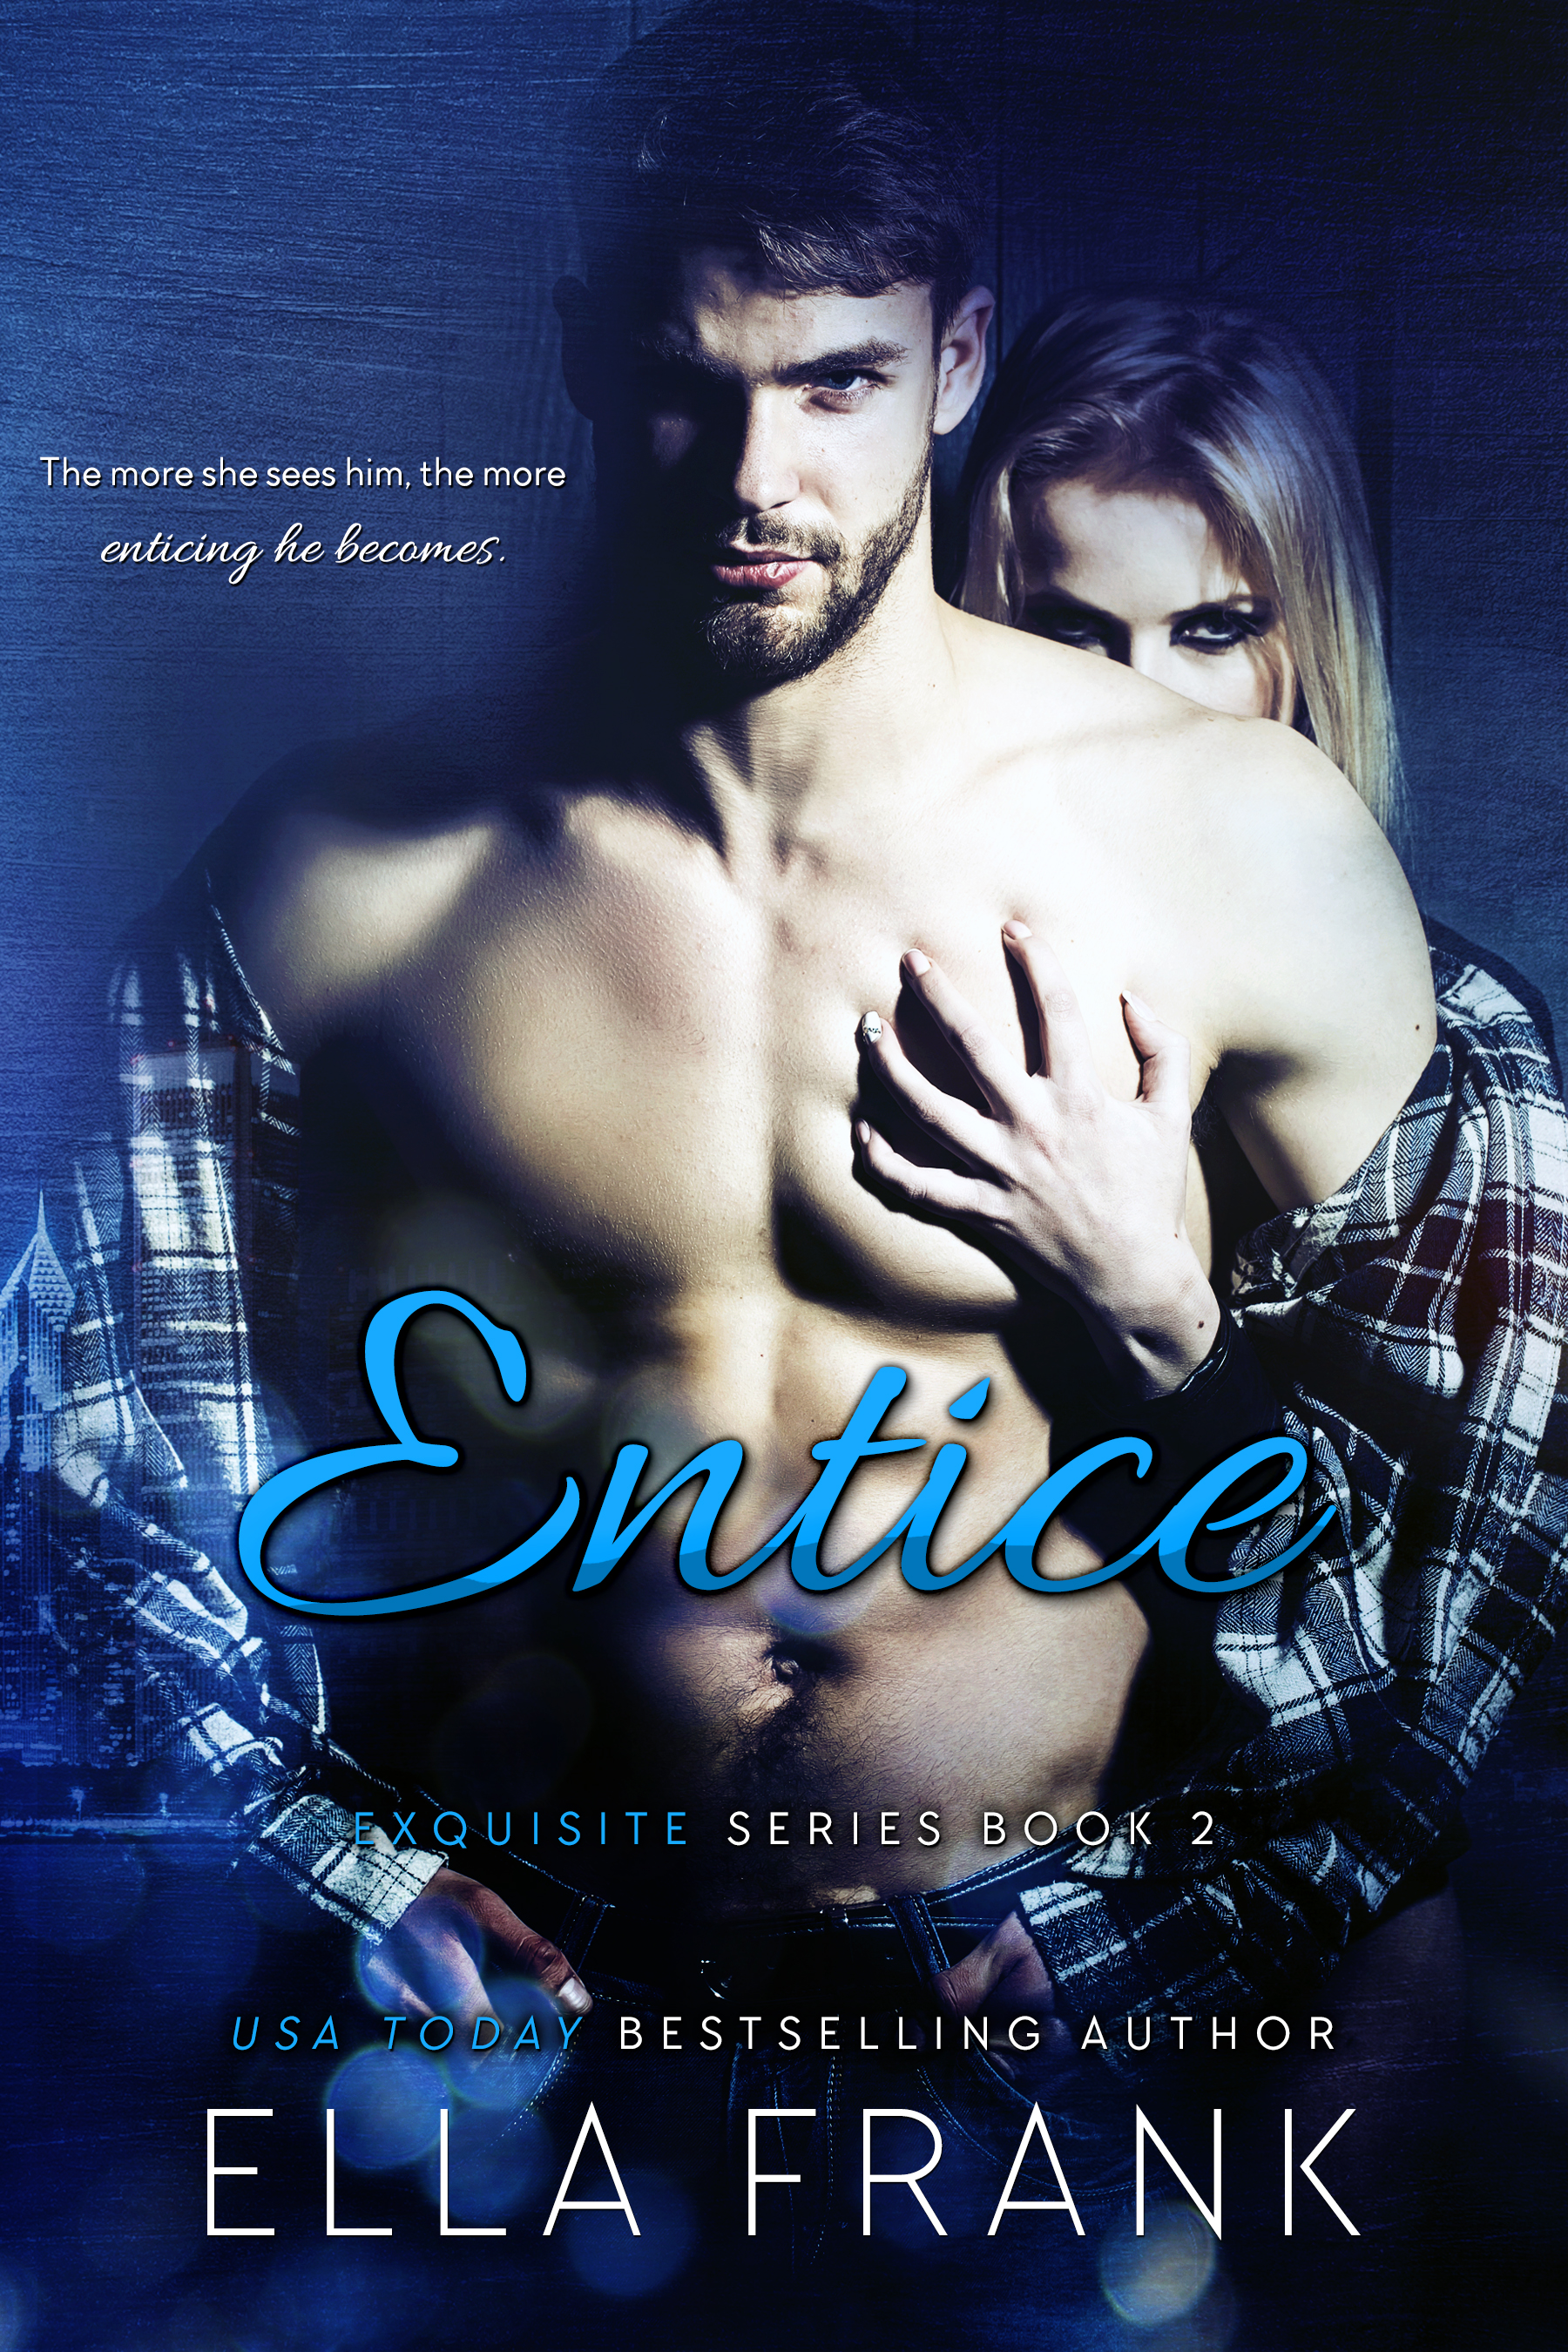 Entice-Customdesign-JayAheer2016-EBOOK